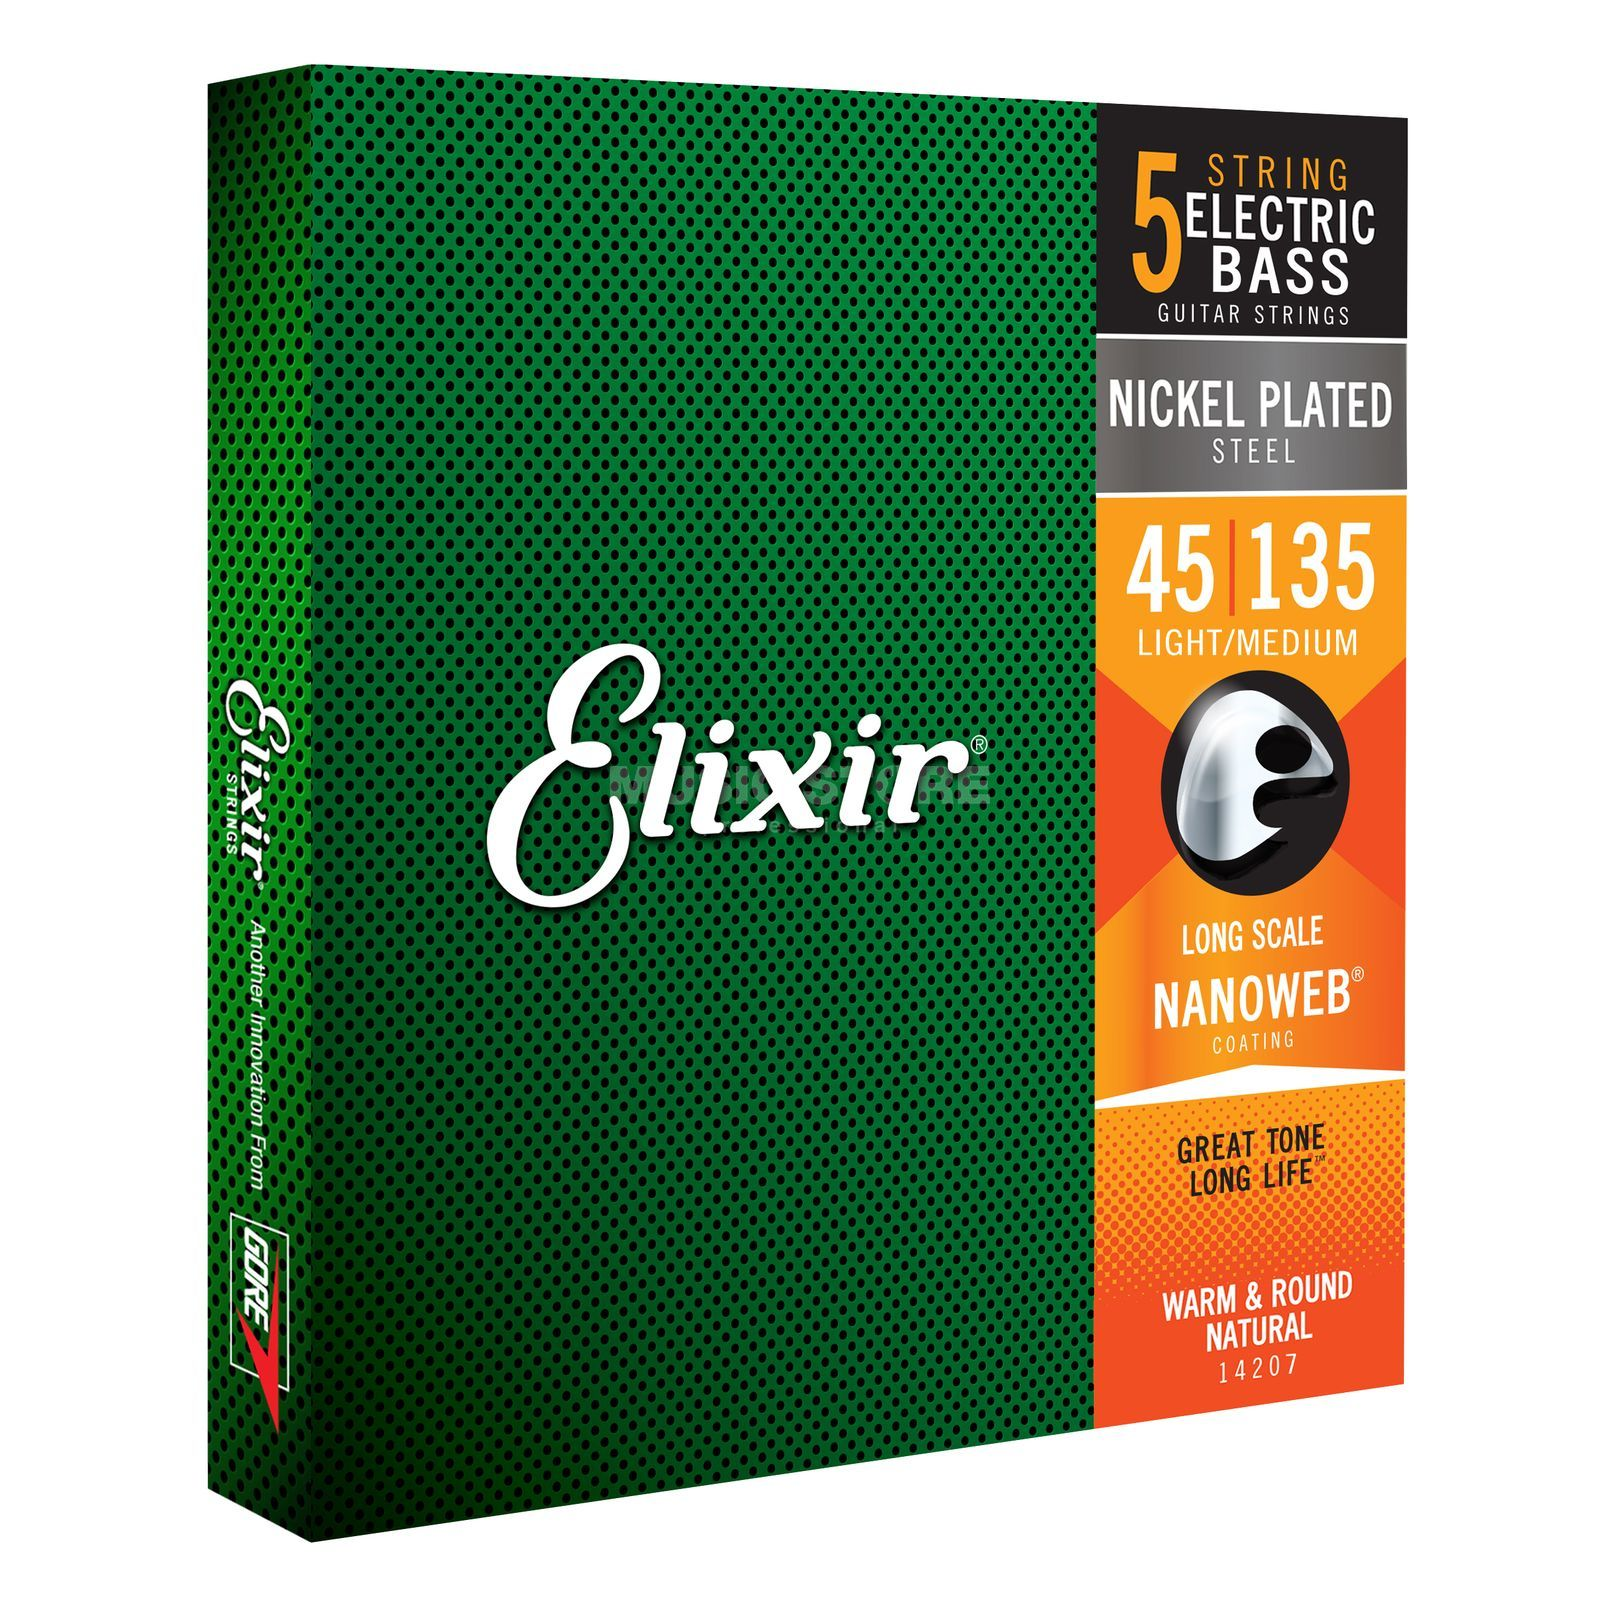 Elixir 5er Bass 45-135 NanoWeb 14207 Light/Medium Produktbild